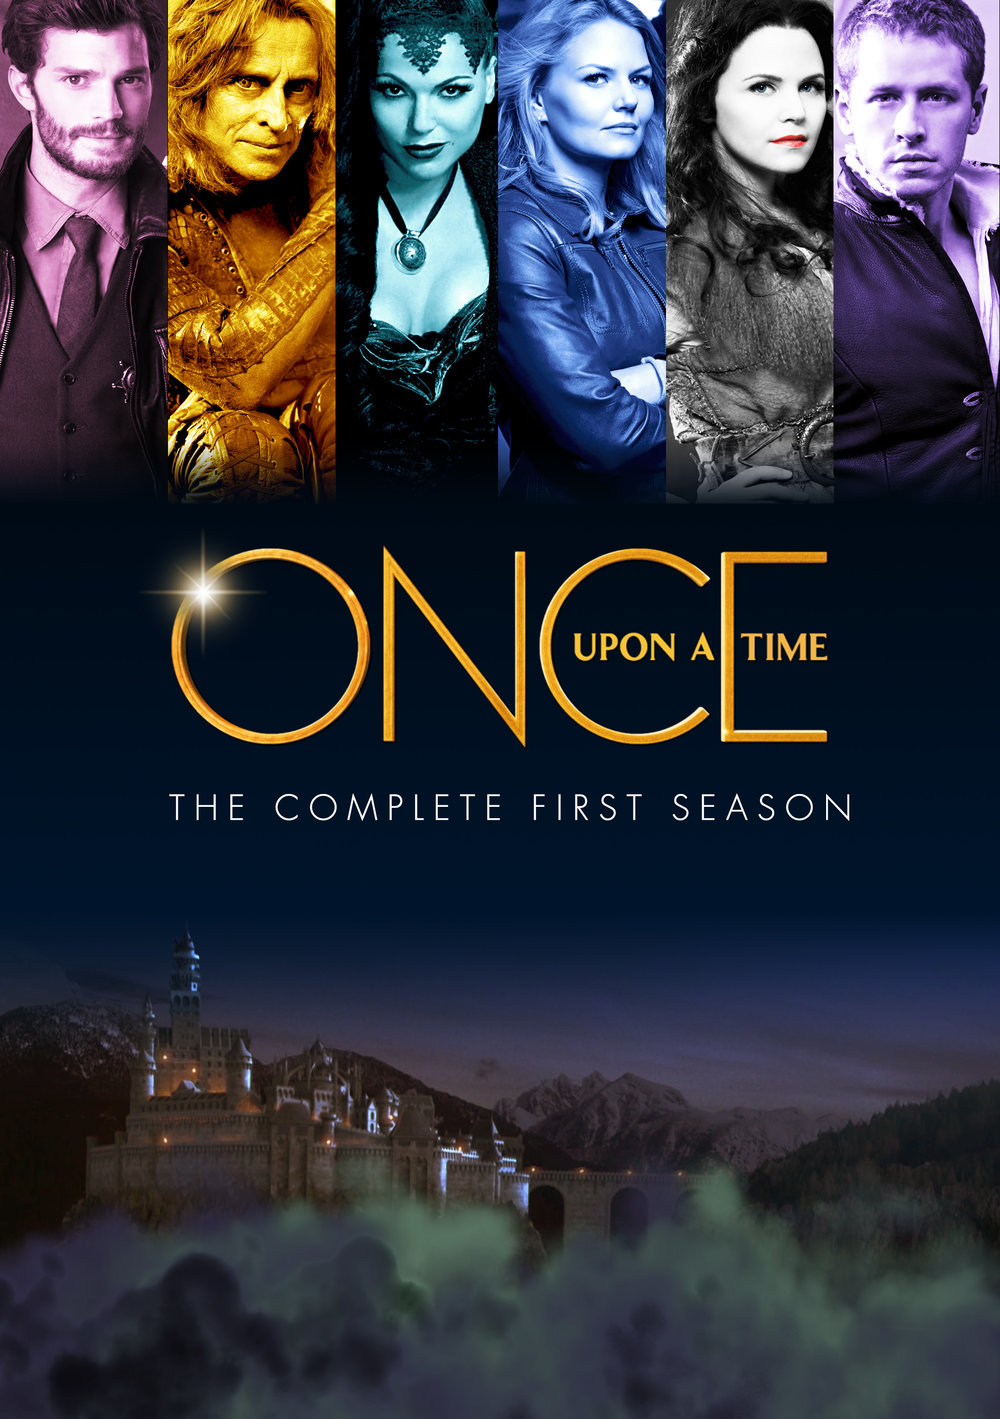 poster-once-upon-a-time.jpg